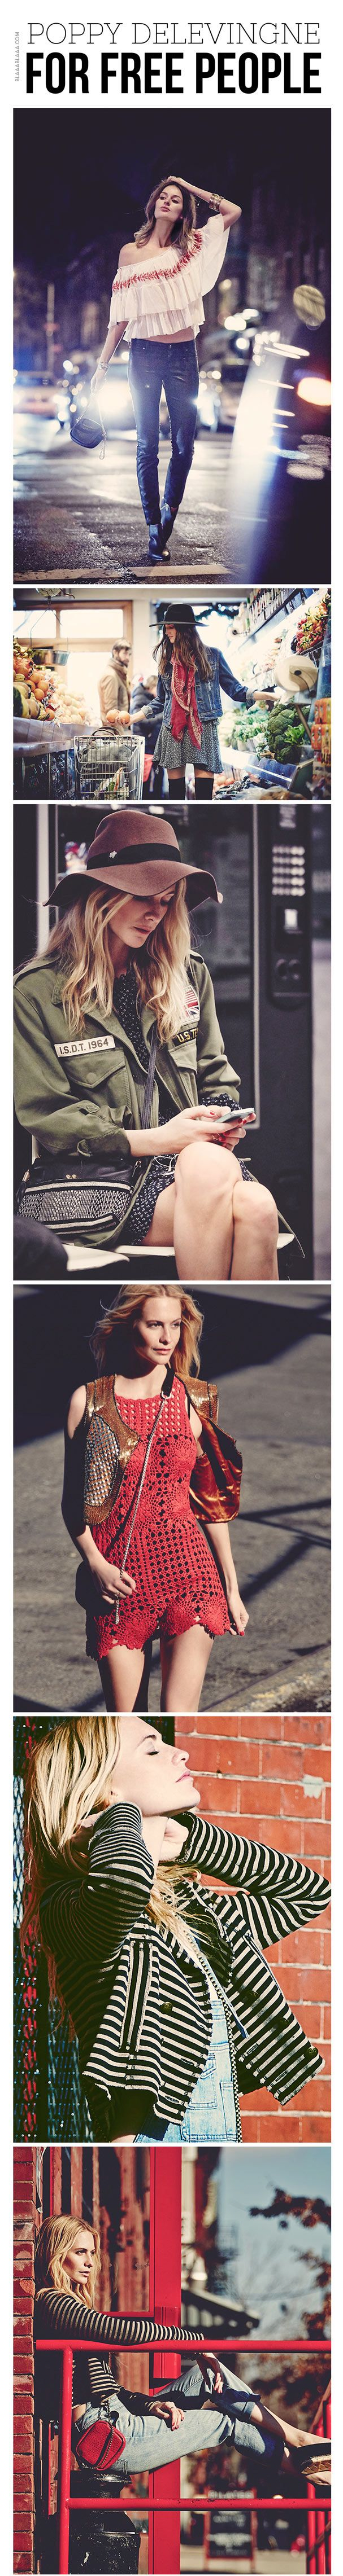 Poppy Delevingne for Free People